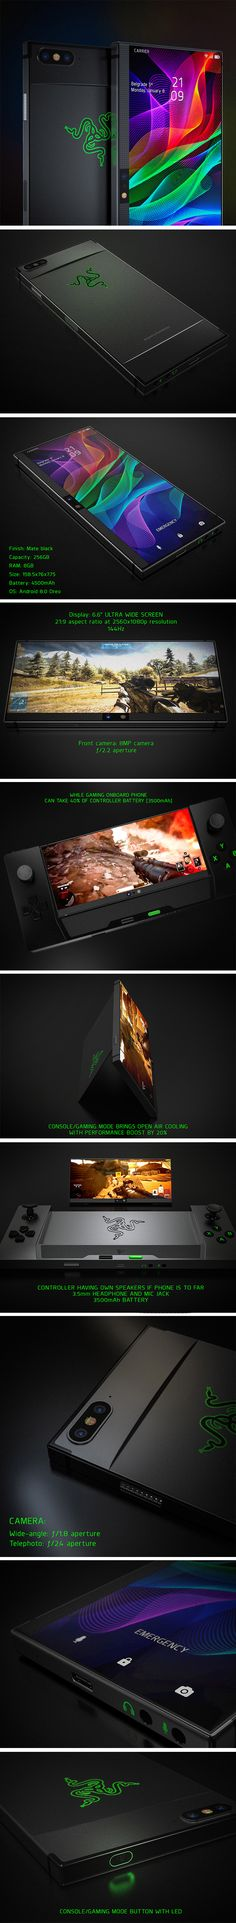 The original Razer was aptly named for being the first truly ultra-thin phone and, despite it being unibody, Petar Trlajic's modern Razer 2.0 concept is no exception. There are purists out there who will still prefer the thin-flip style of the original, but they might also be enticed by the 2.0's equally flickable screen. This is a gamer's Razer and is packed with loads of features ideal for powering through your favorite strategy or action adventures.